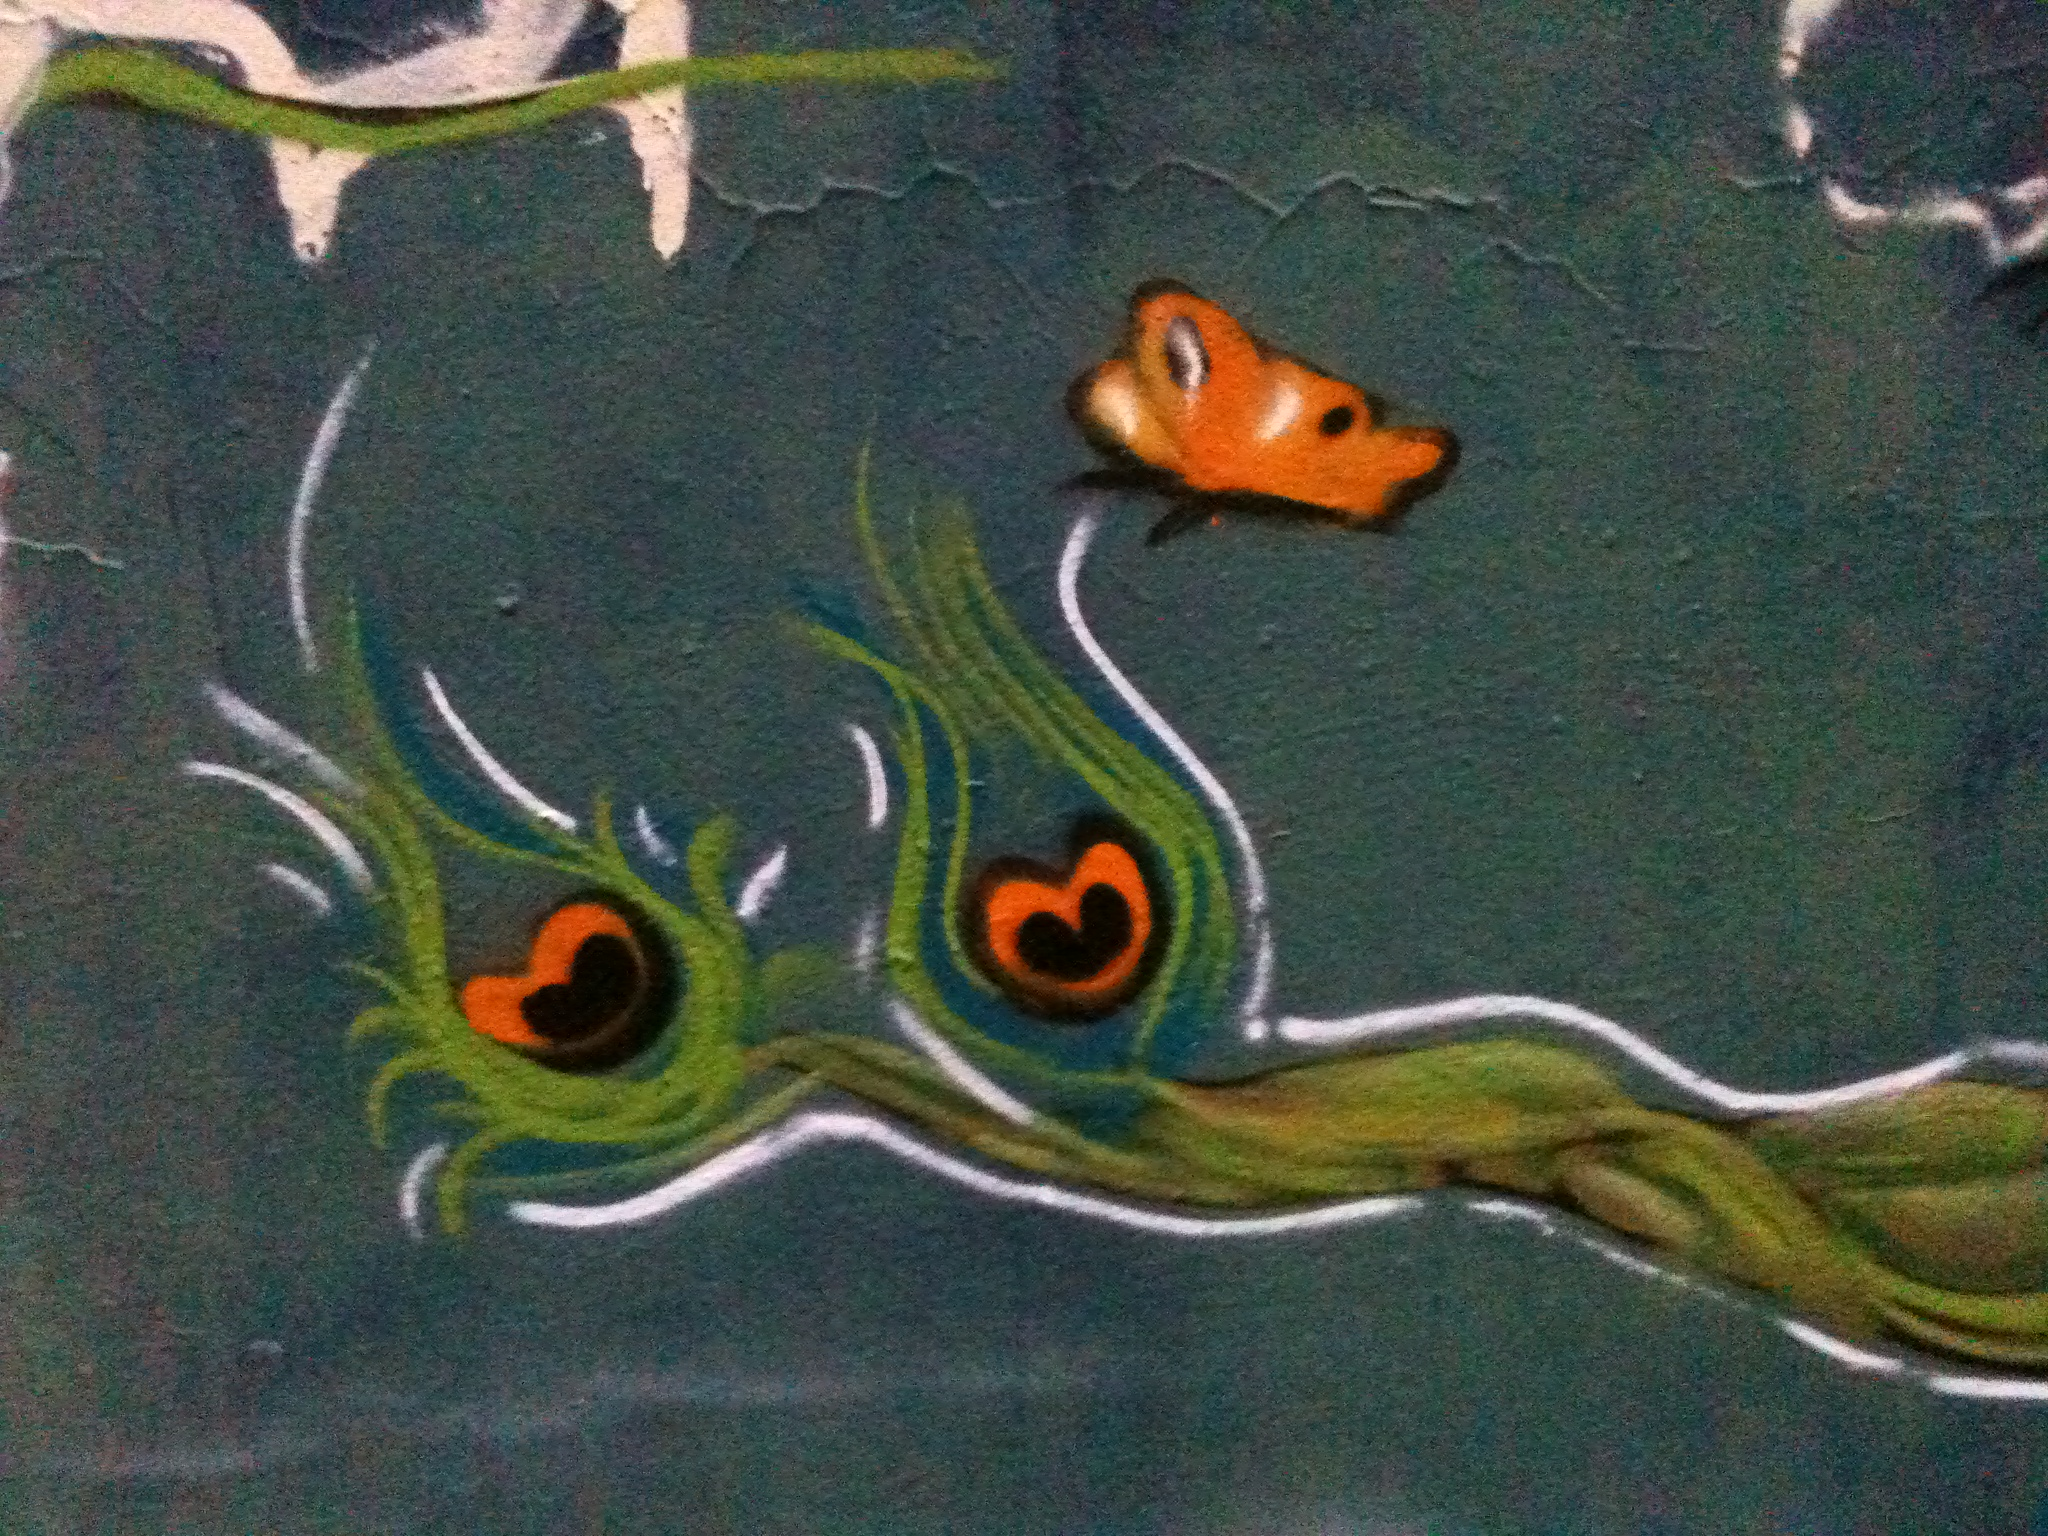 graffiti of a butterfly hovering a branch that contains two nests of hearts